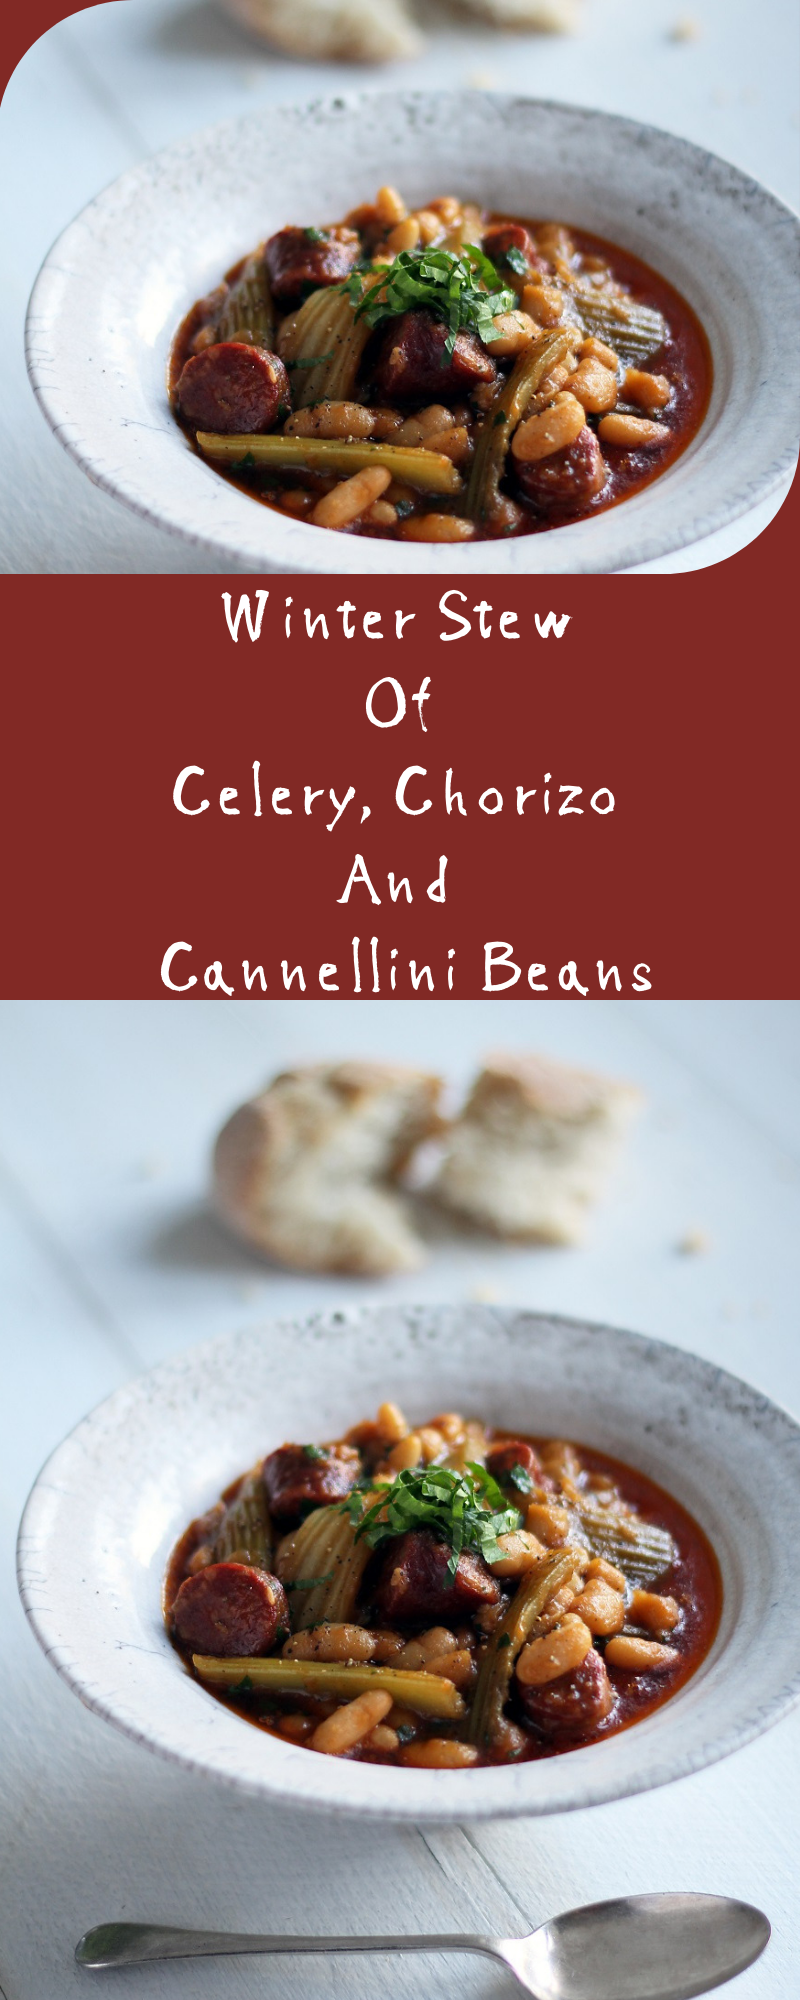 Winter Stew Of Celery, Chorizo And Cannellini Beans